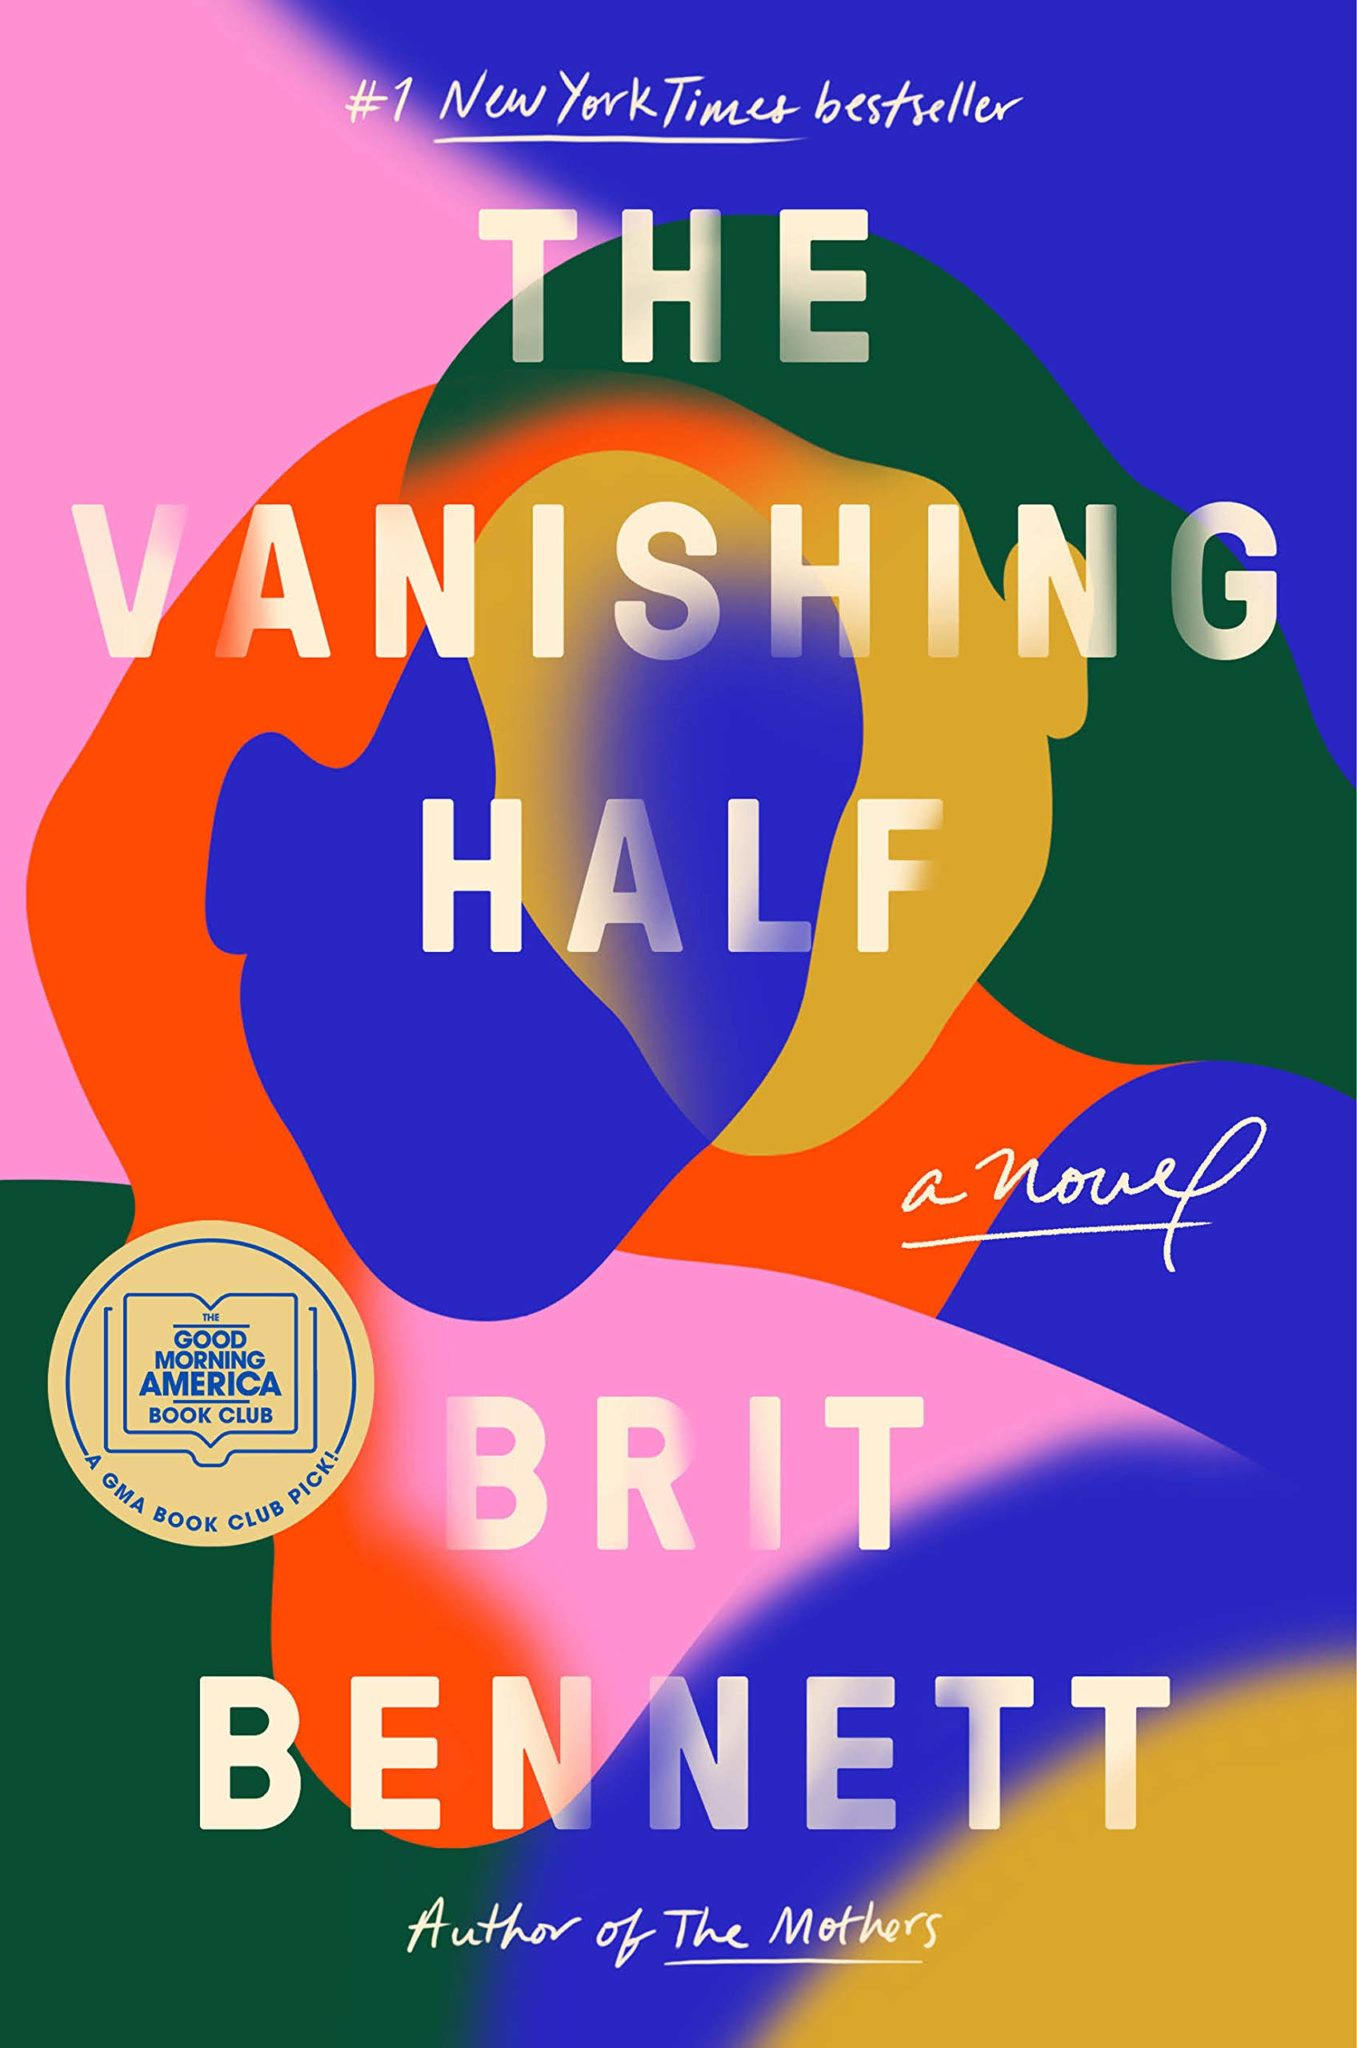 Books I Read in May, June, and July 2020: The Vanishing Half by Brit Bennett | Rhyme & Reason